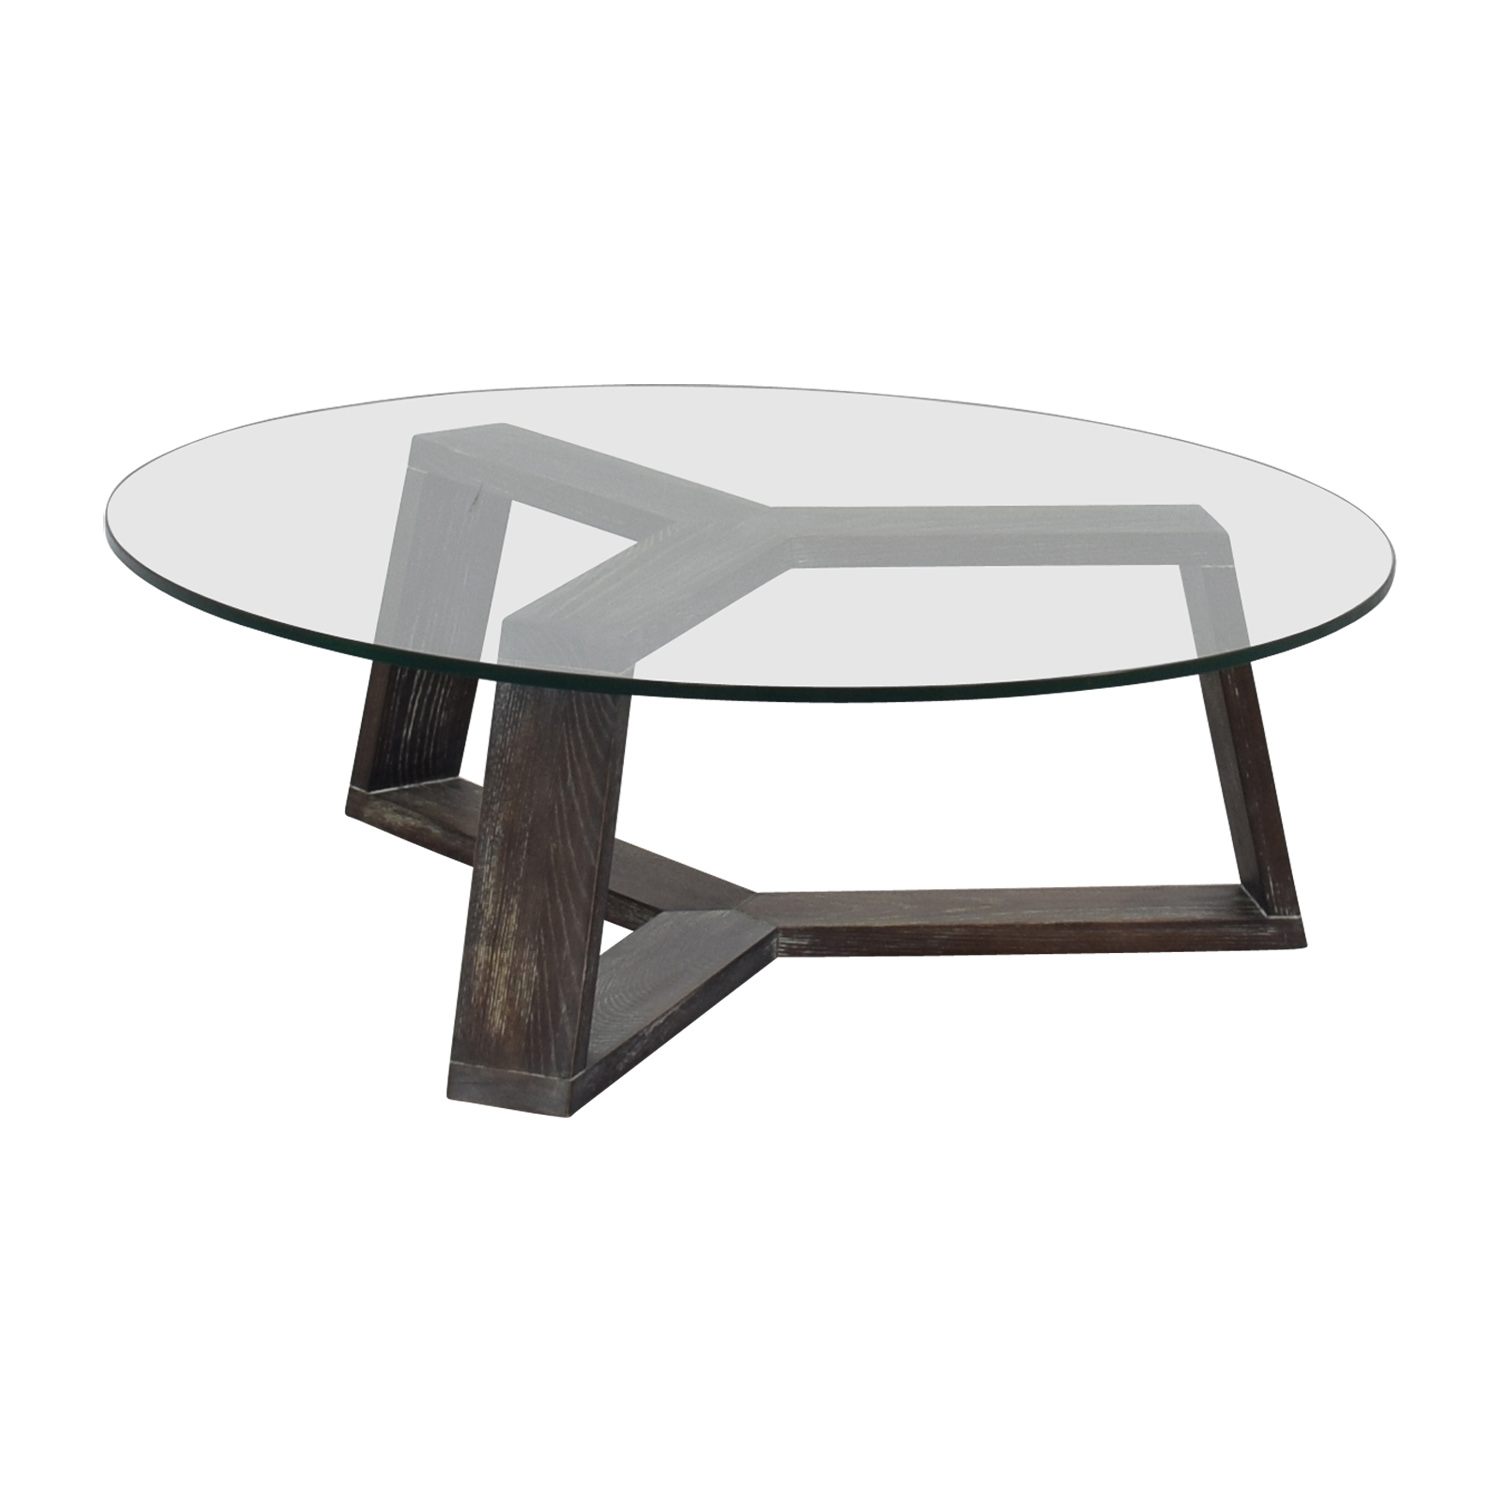 Buy Glass Coffee Table 83 Off Cb2 Cb2 Round Glass And Wood Coffee Table Tables